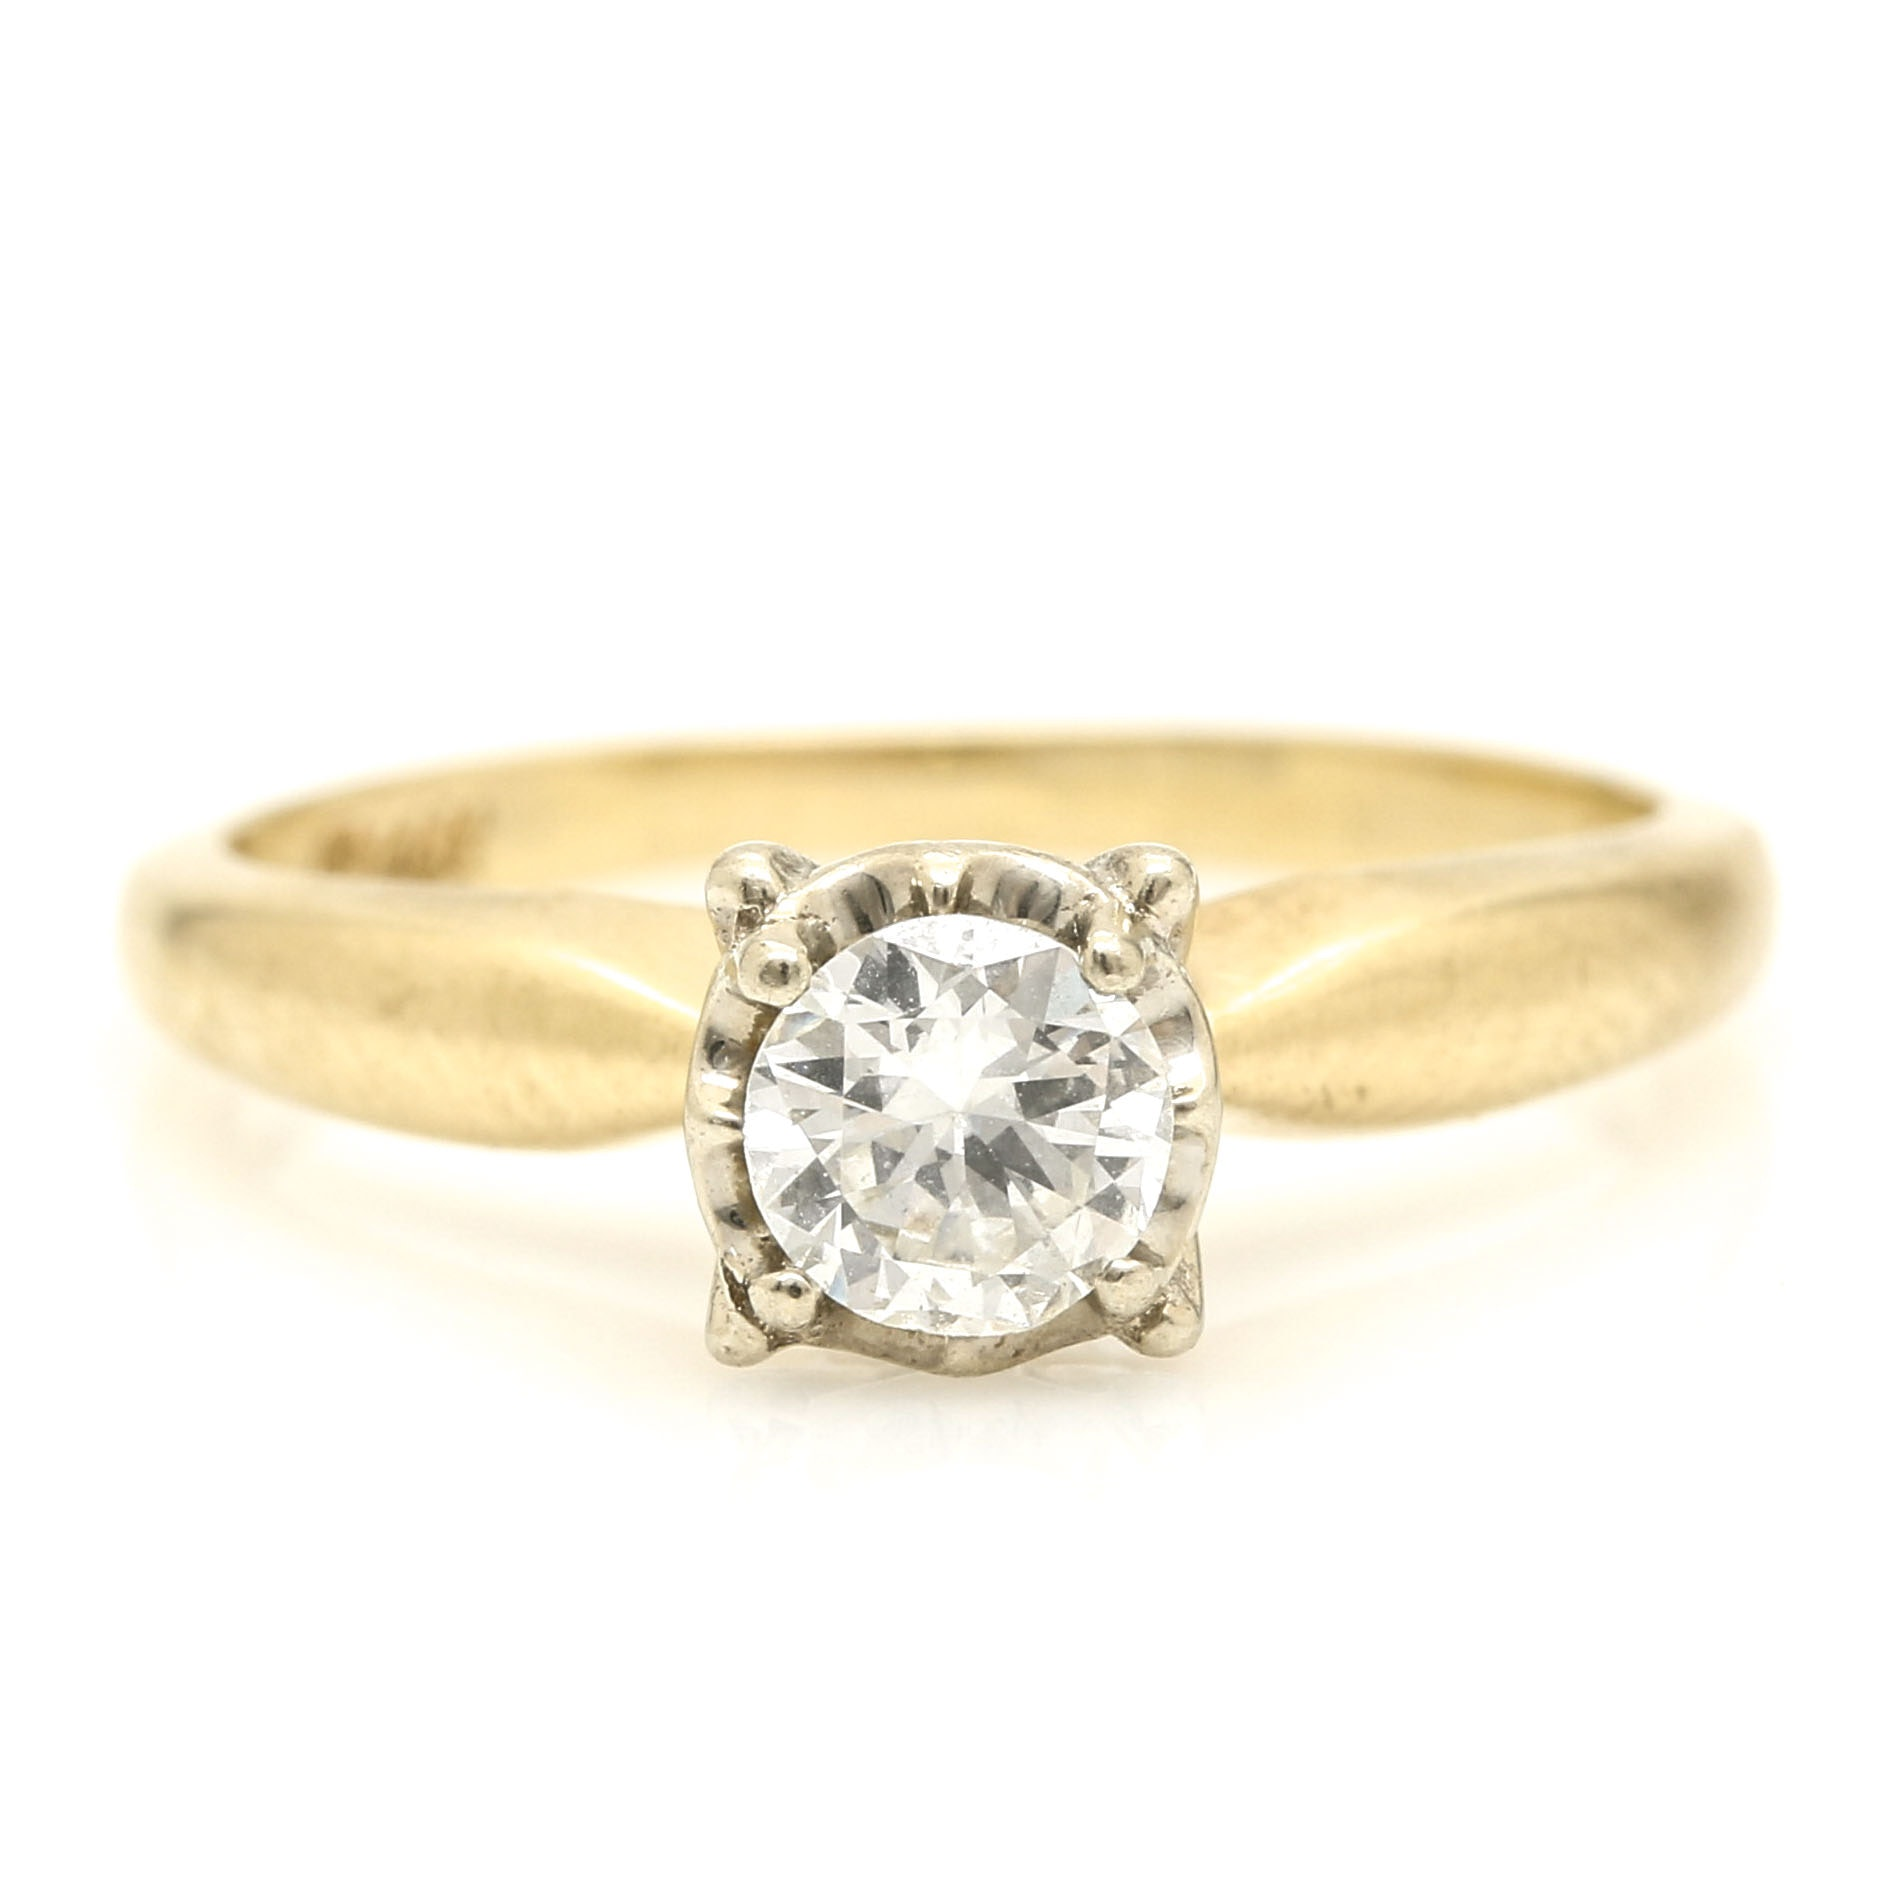 14K Yellow Gold and White Gold Diamond Ring